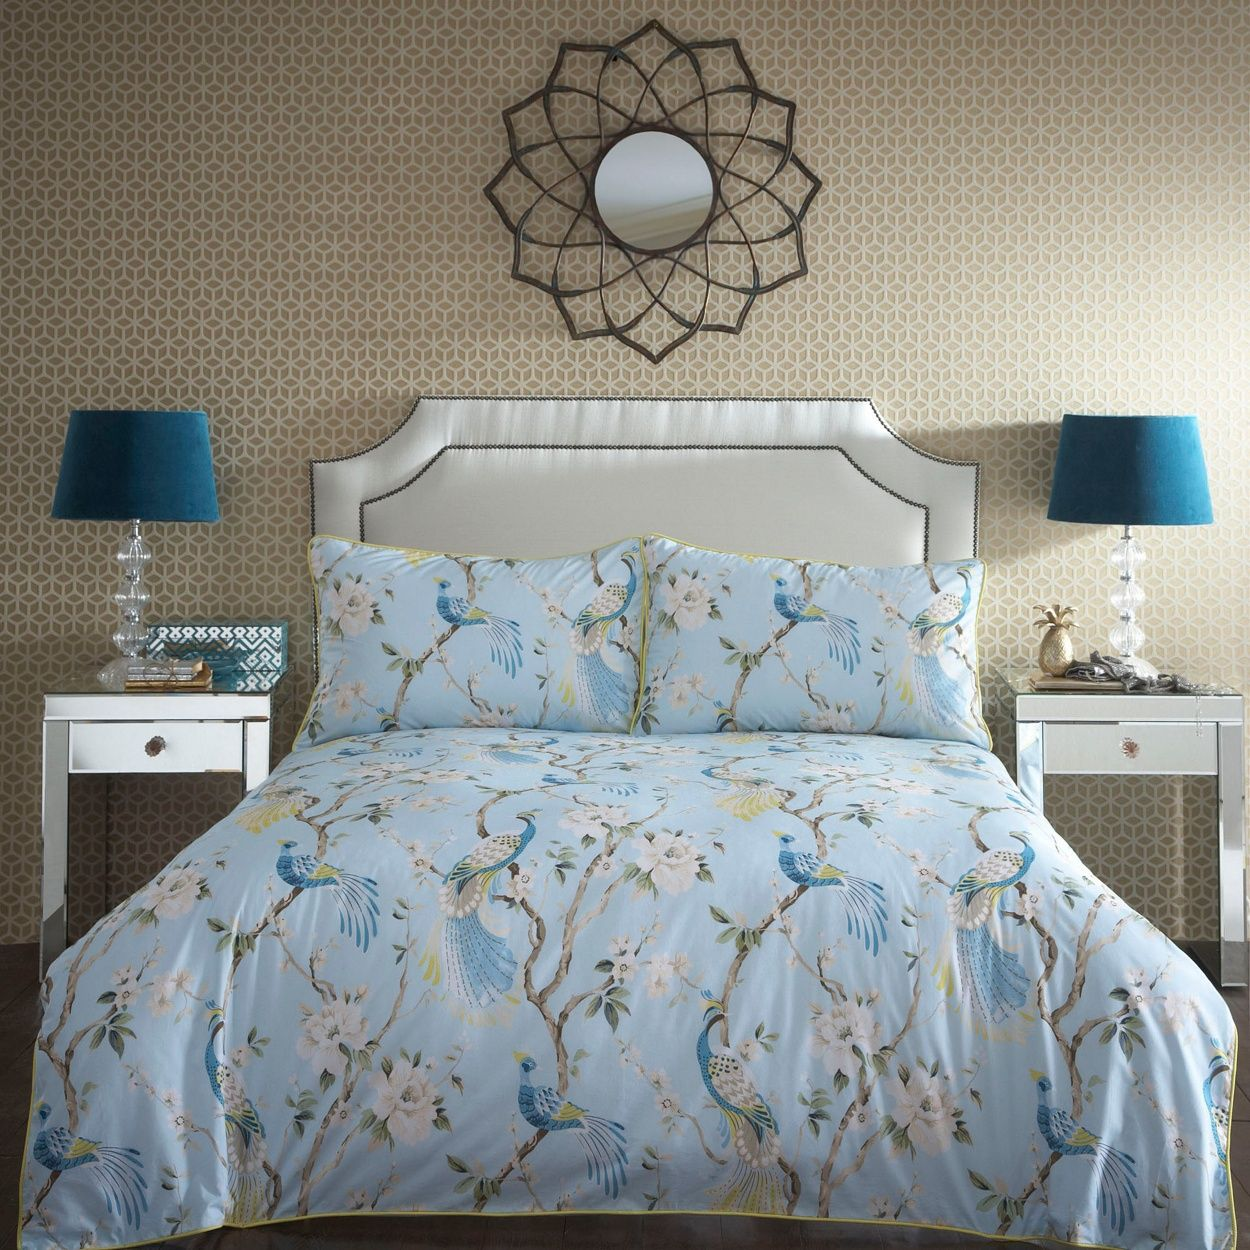 Home Collection Blue 'Paradise' floral bird pattern